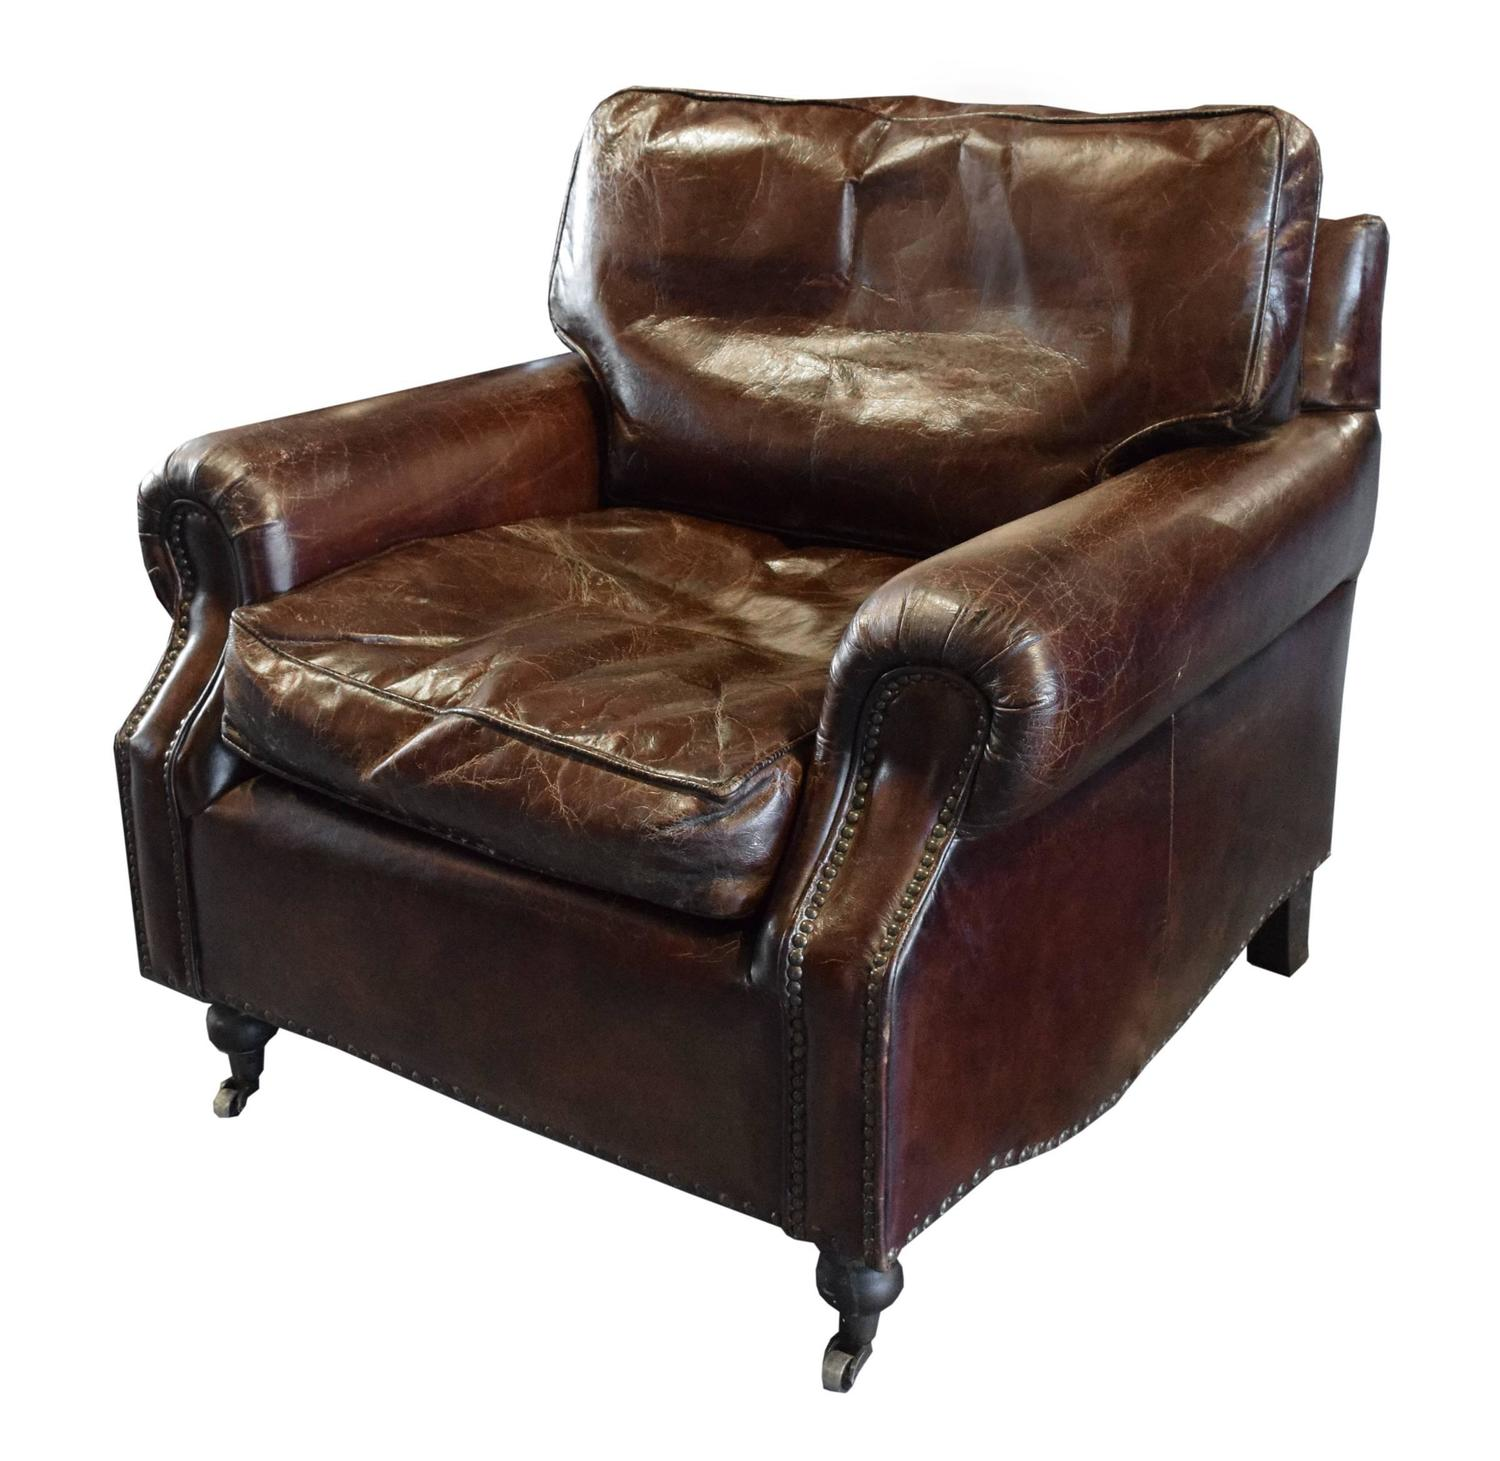 pair of italian leather club chairs at 1stdibs. Black Bedroom Furniture Sets. Home Design Ideas